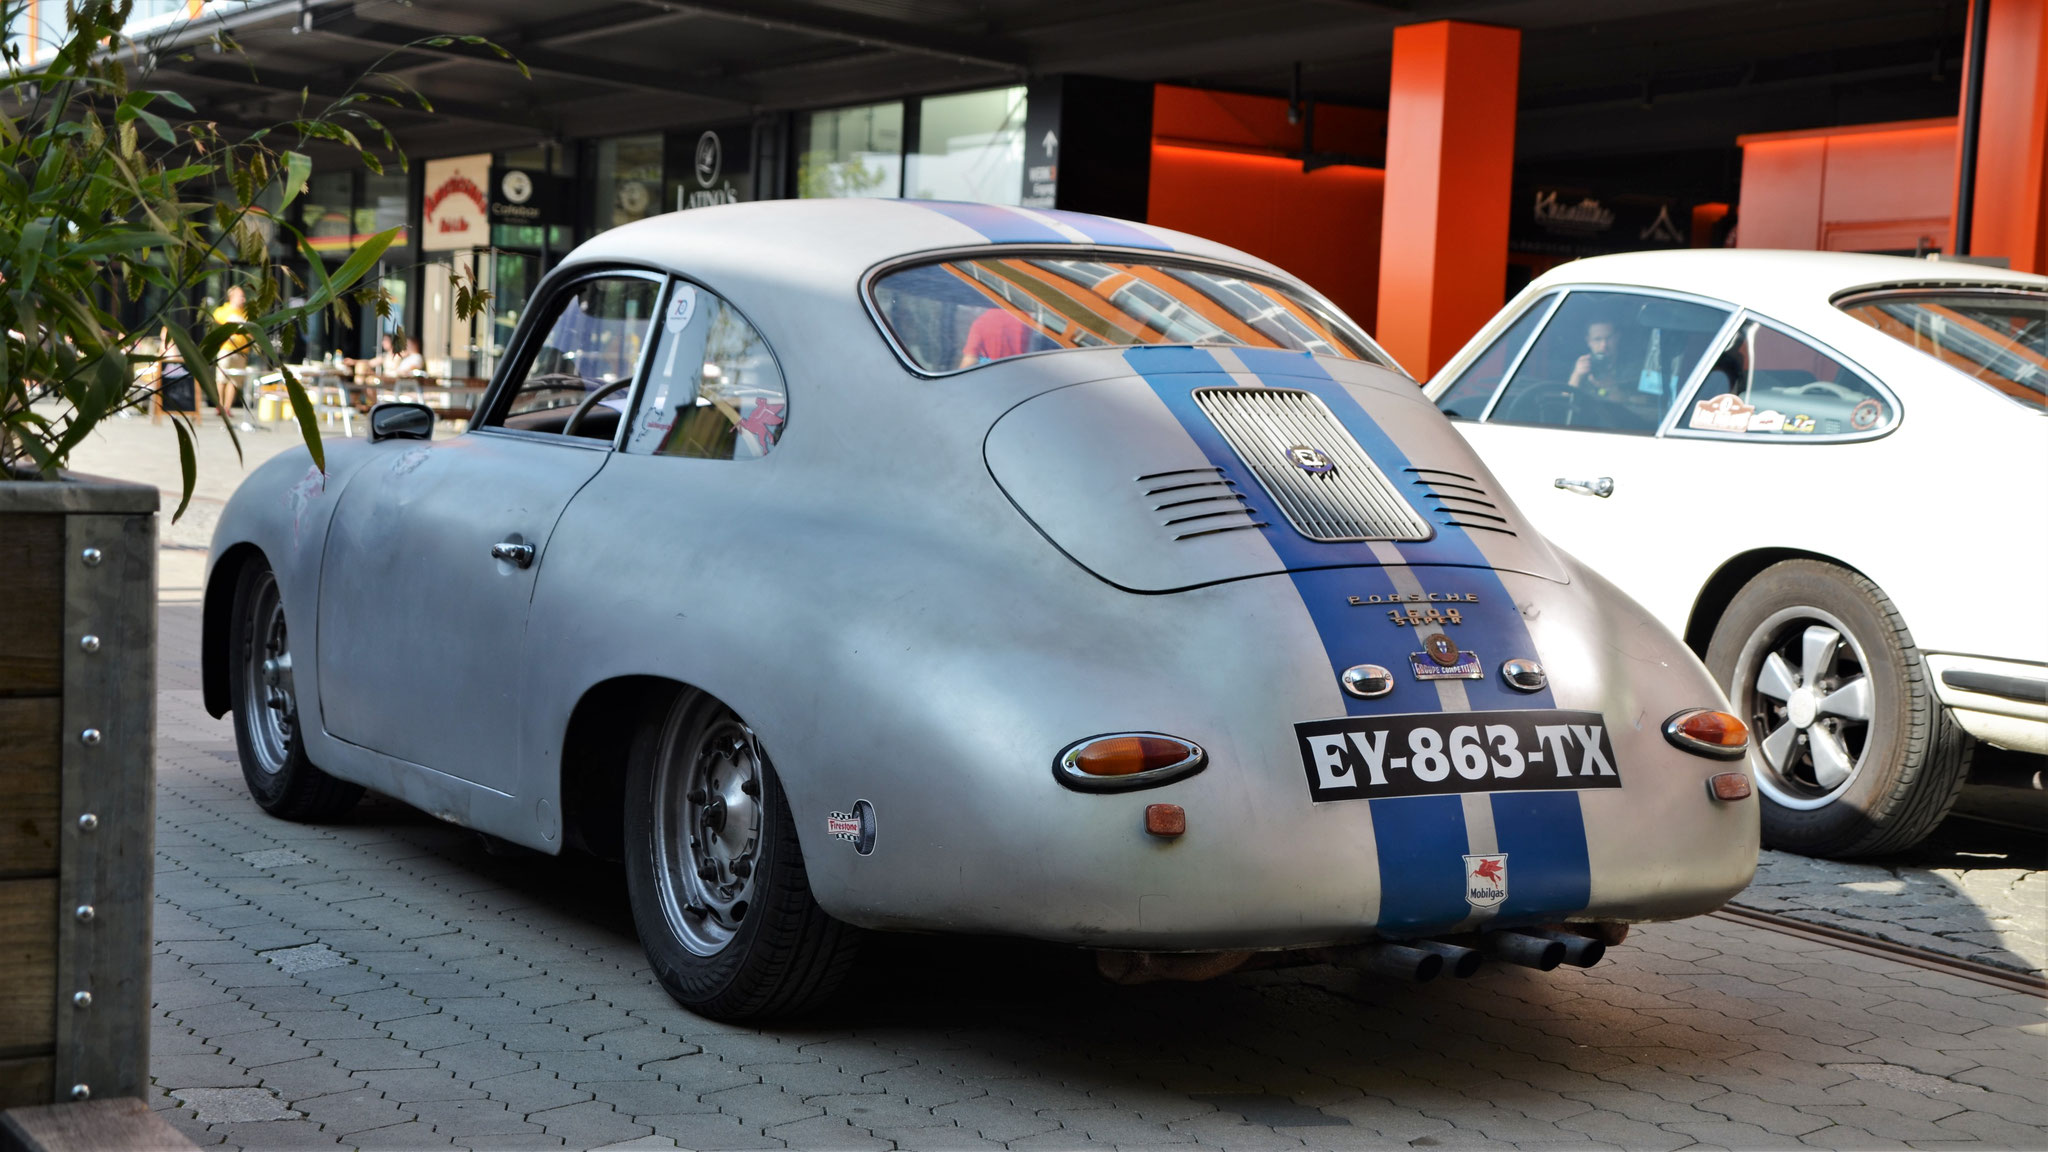 Porsche 356 1600 Super - EY-863-TX